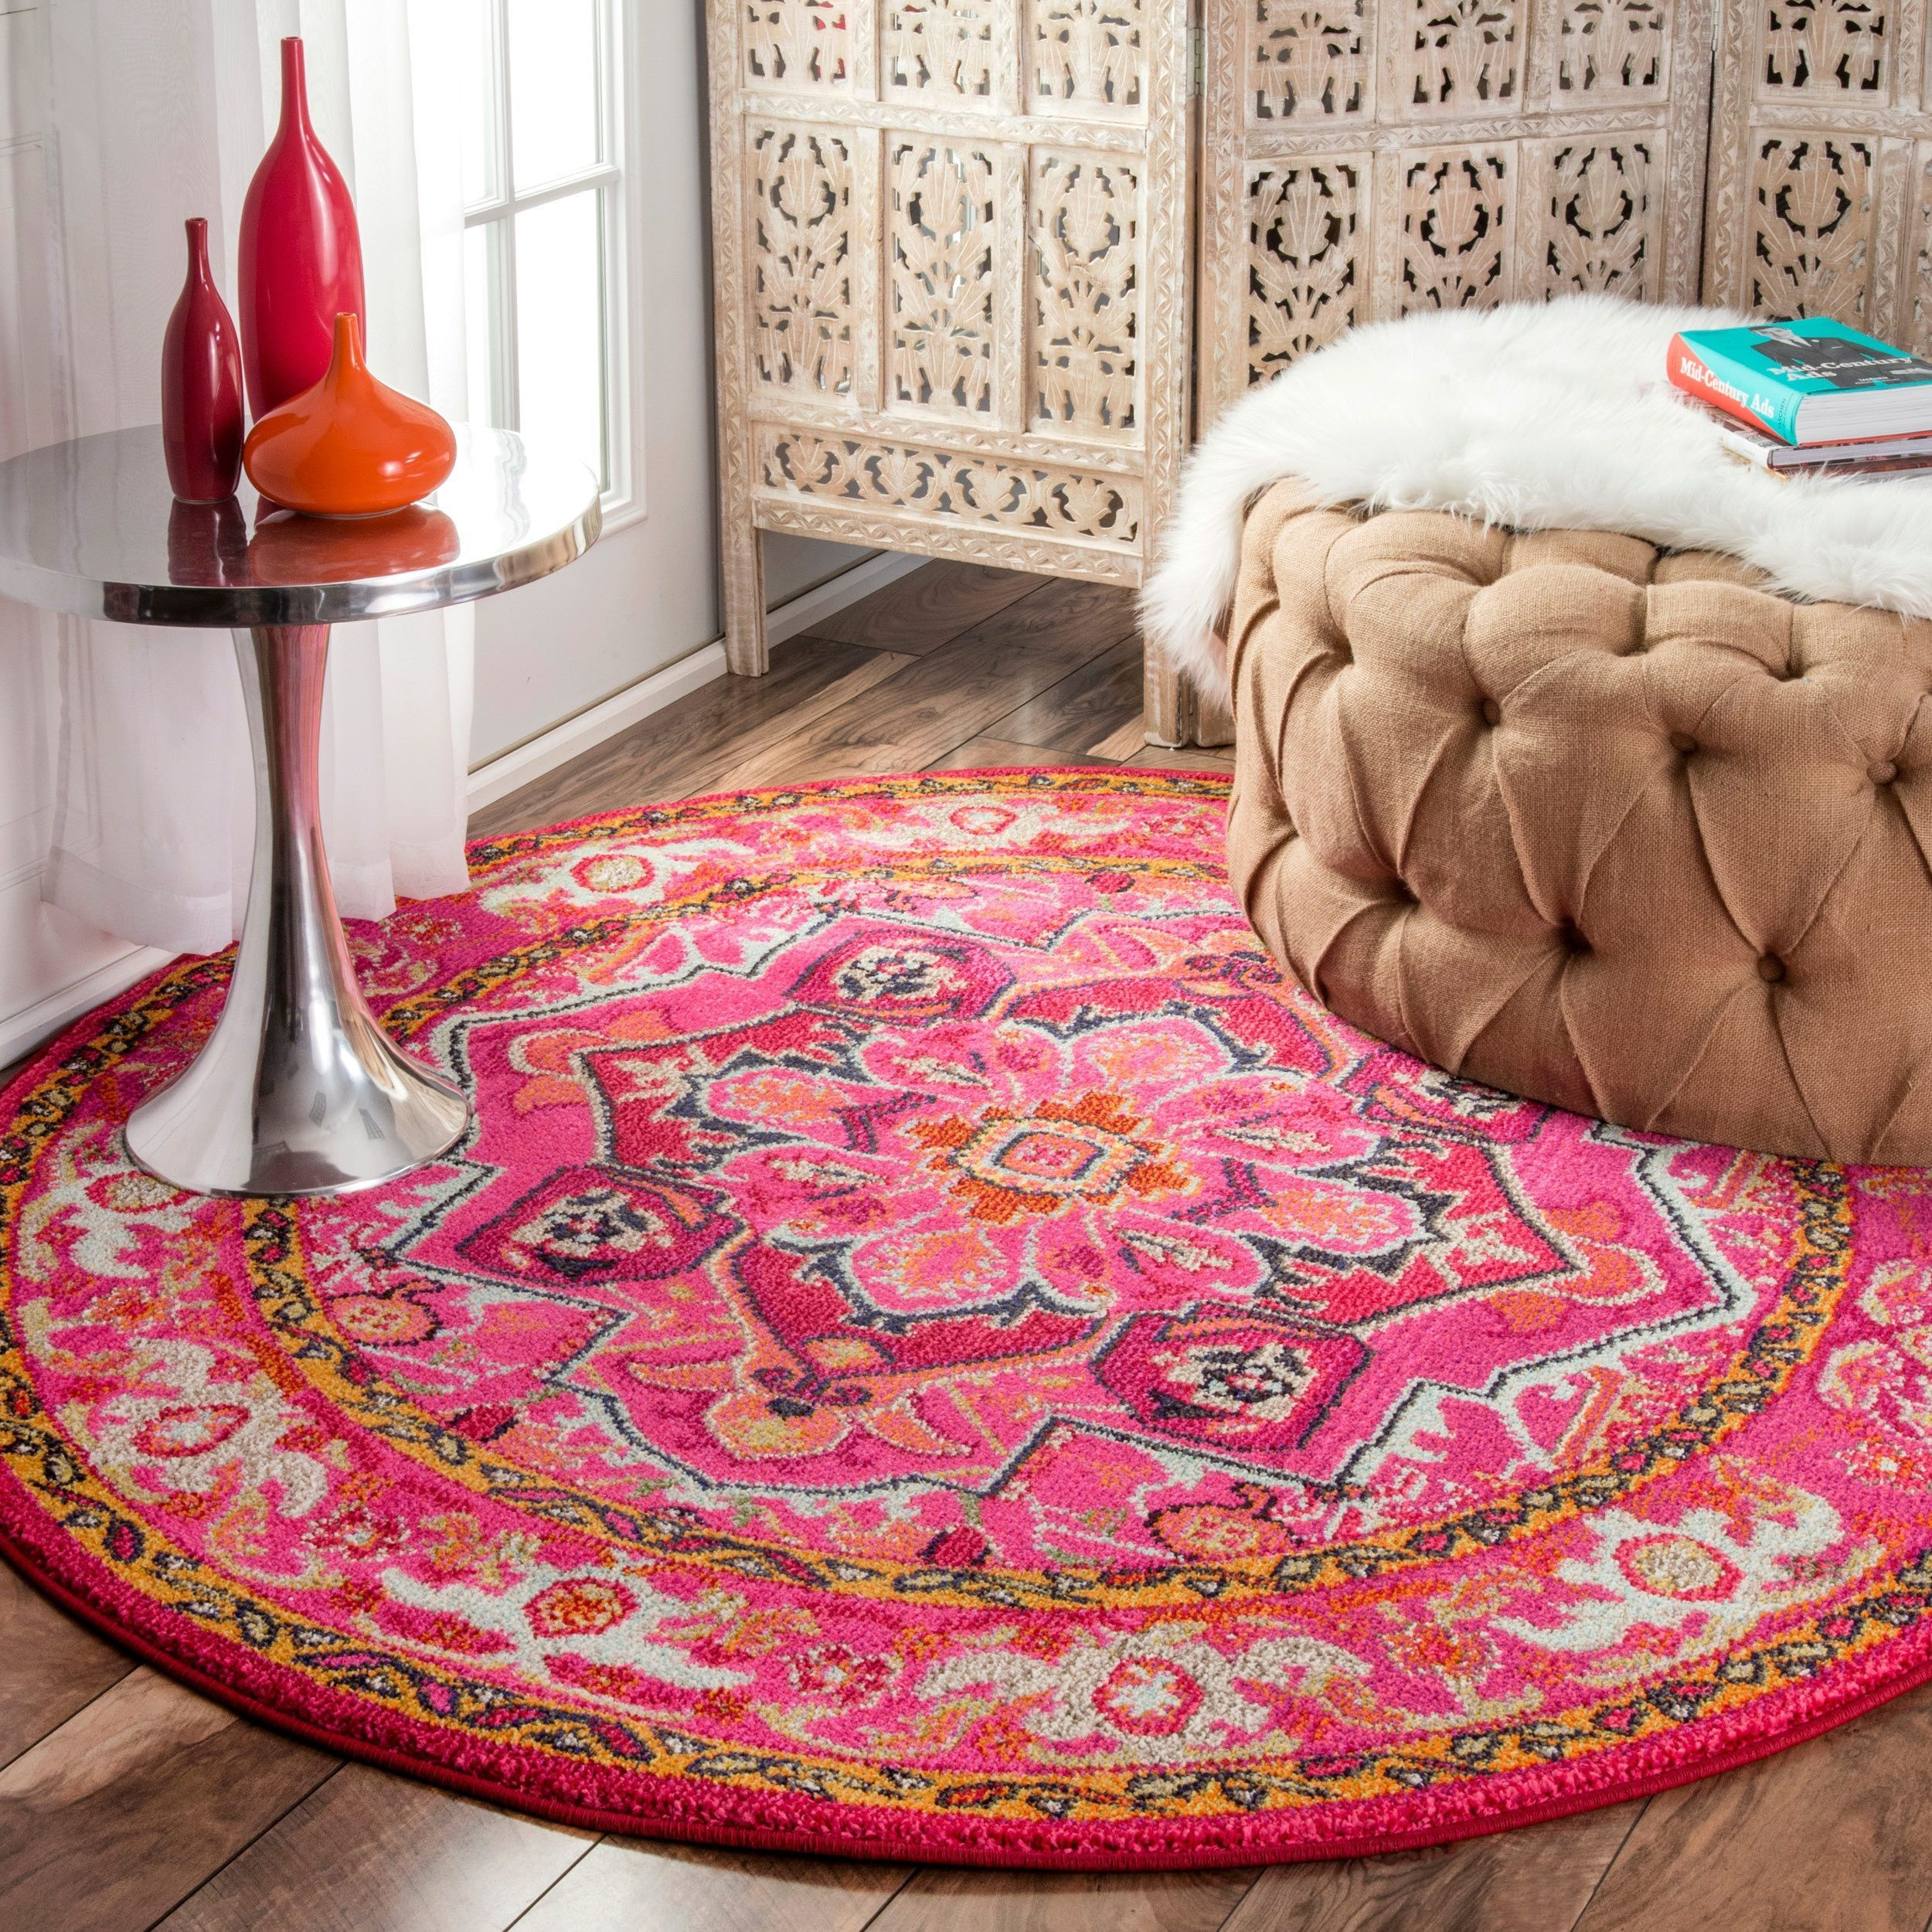 Pink Rugs For Living Room Nuloom Traditional Flower Medallion Violet Pink Round Rug 53